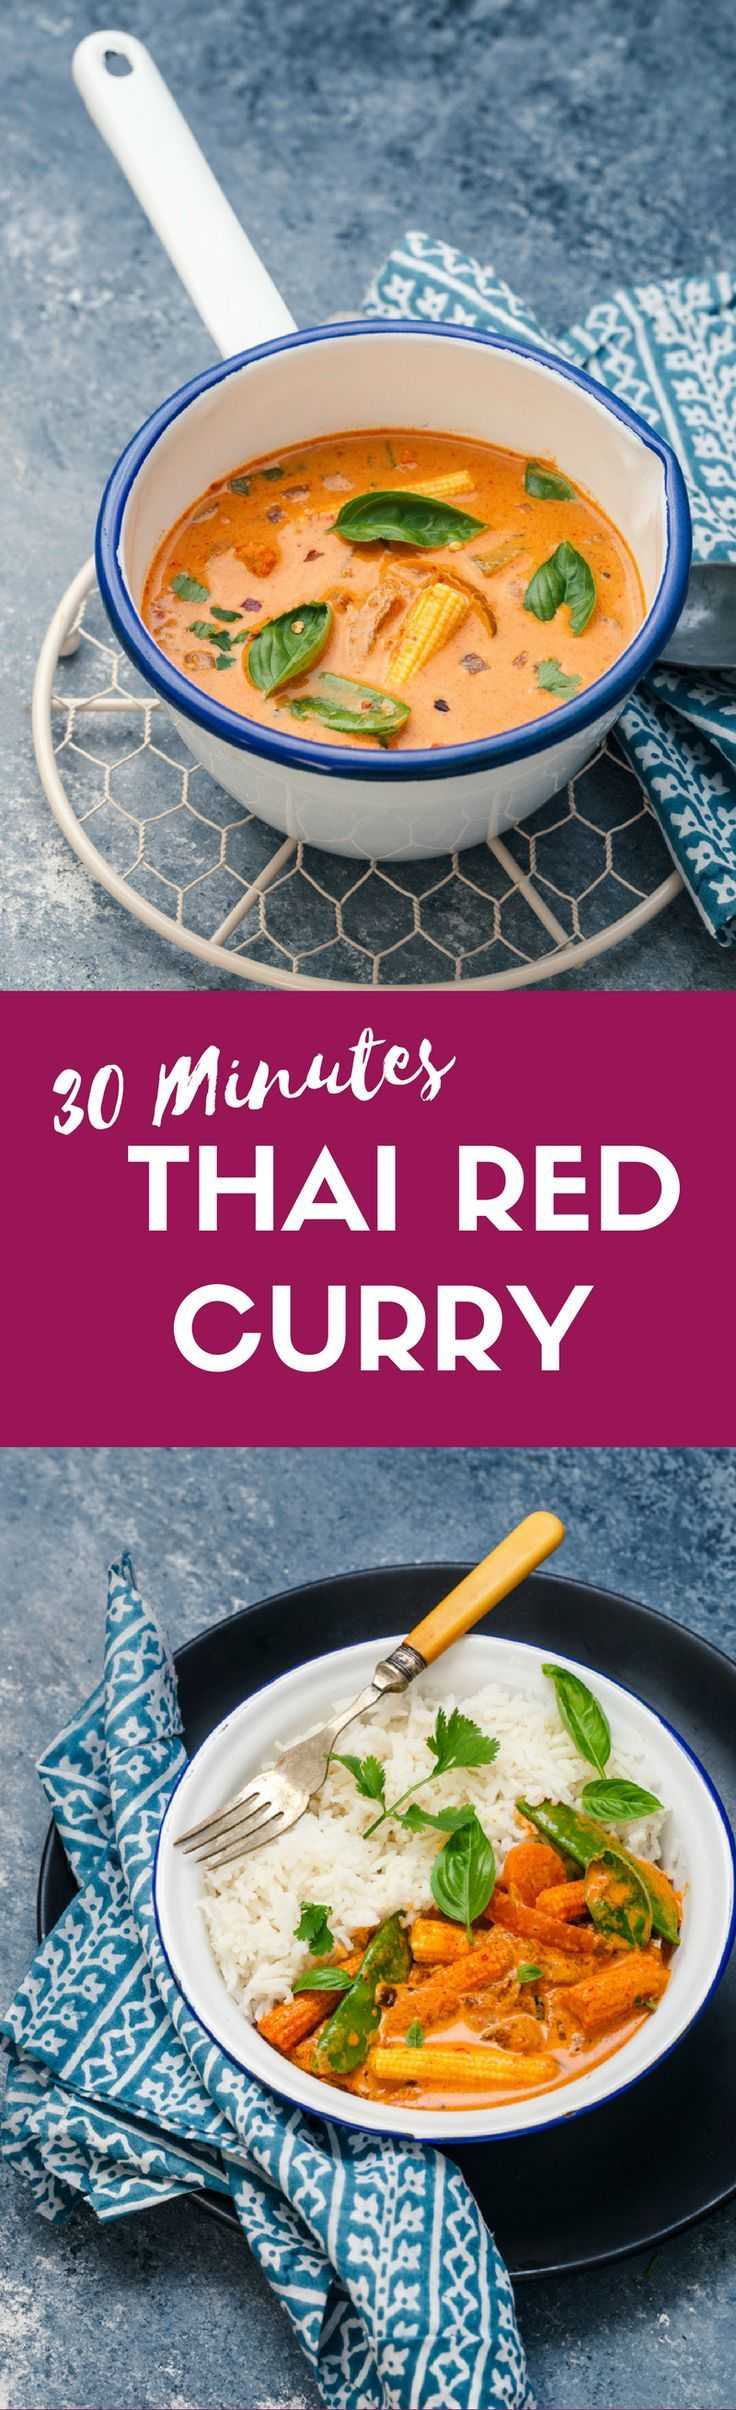 88 best thai food recipes images on pinterest thai food recipes 30 minutes vegan thai red curry with vegetables thai food recipescurry forumfinder Gallery